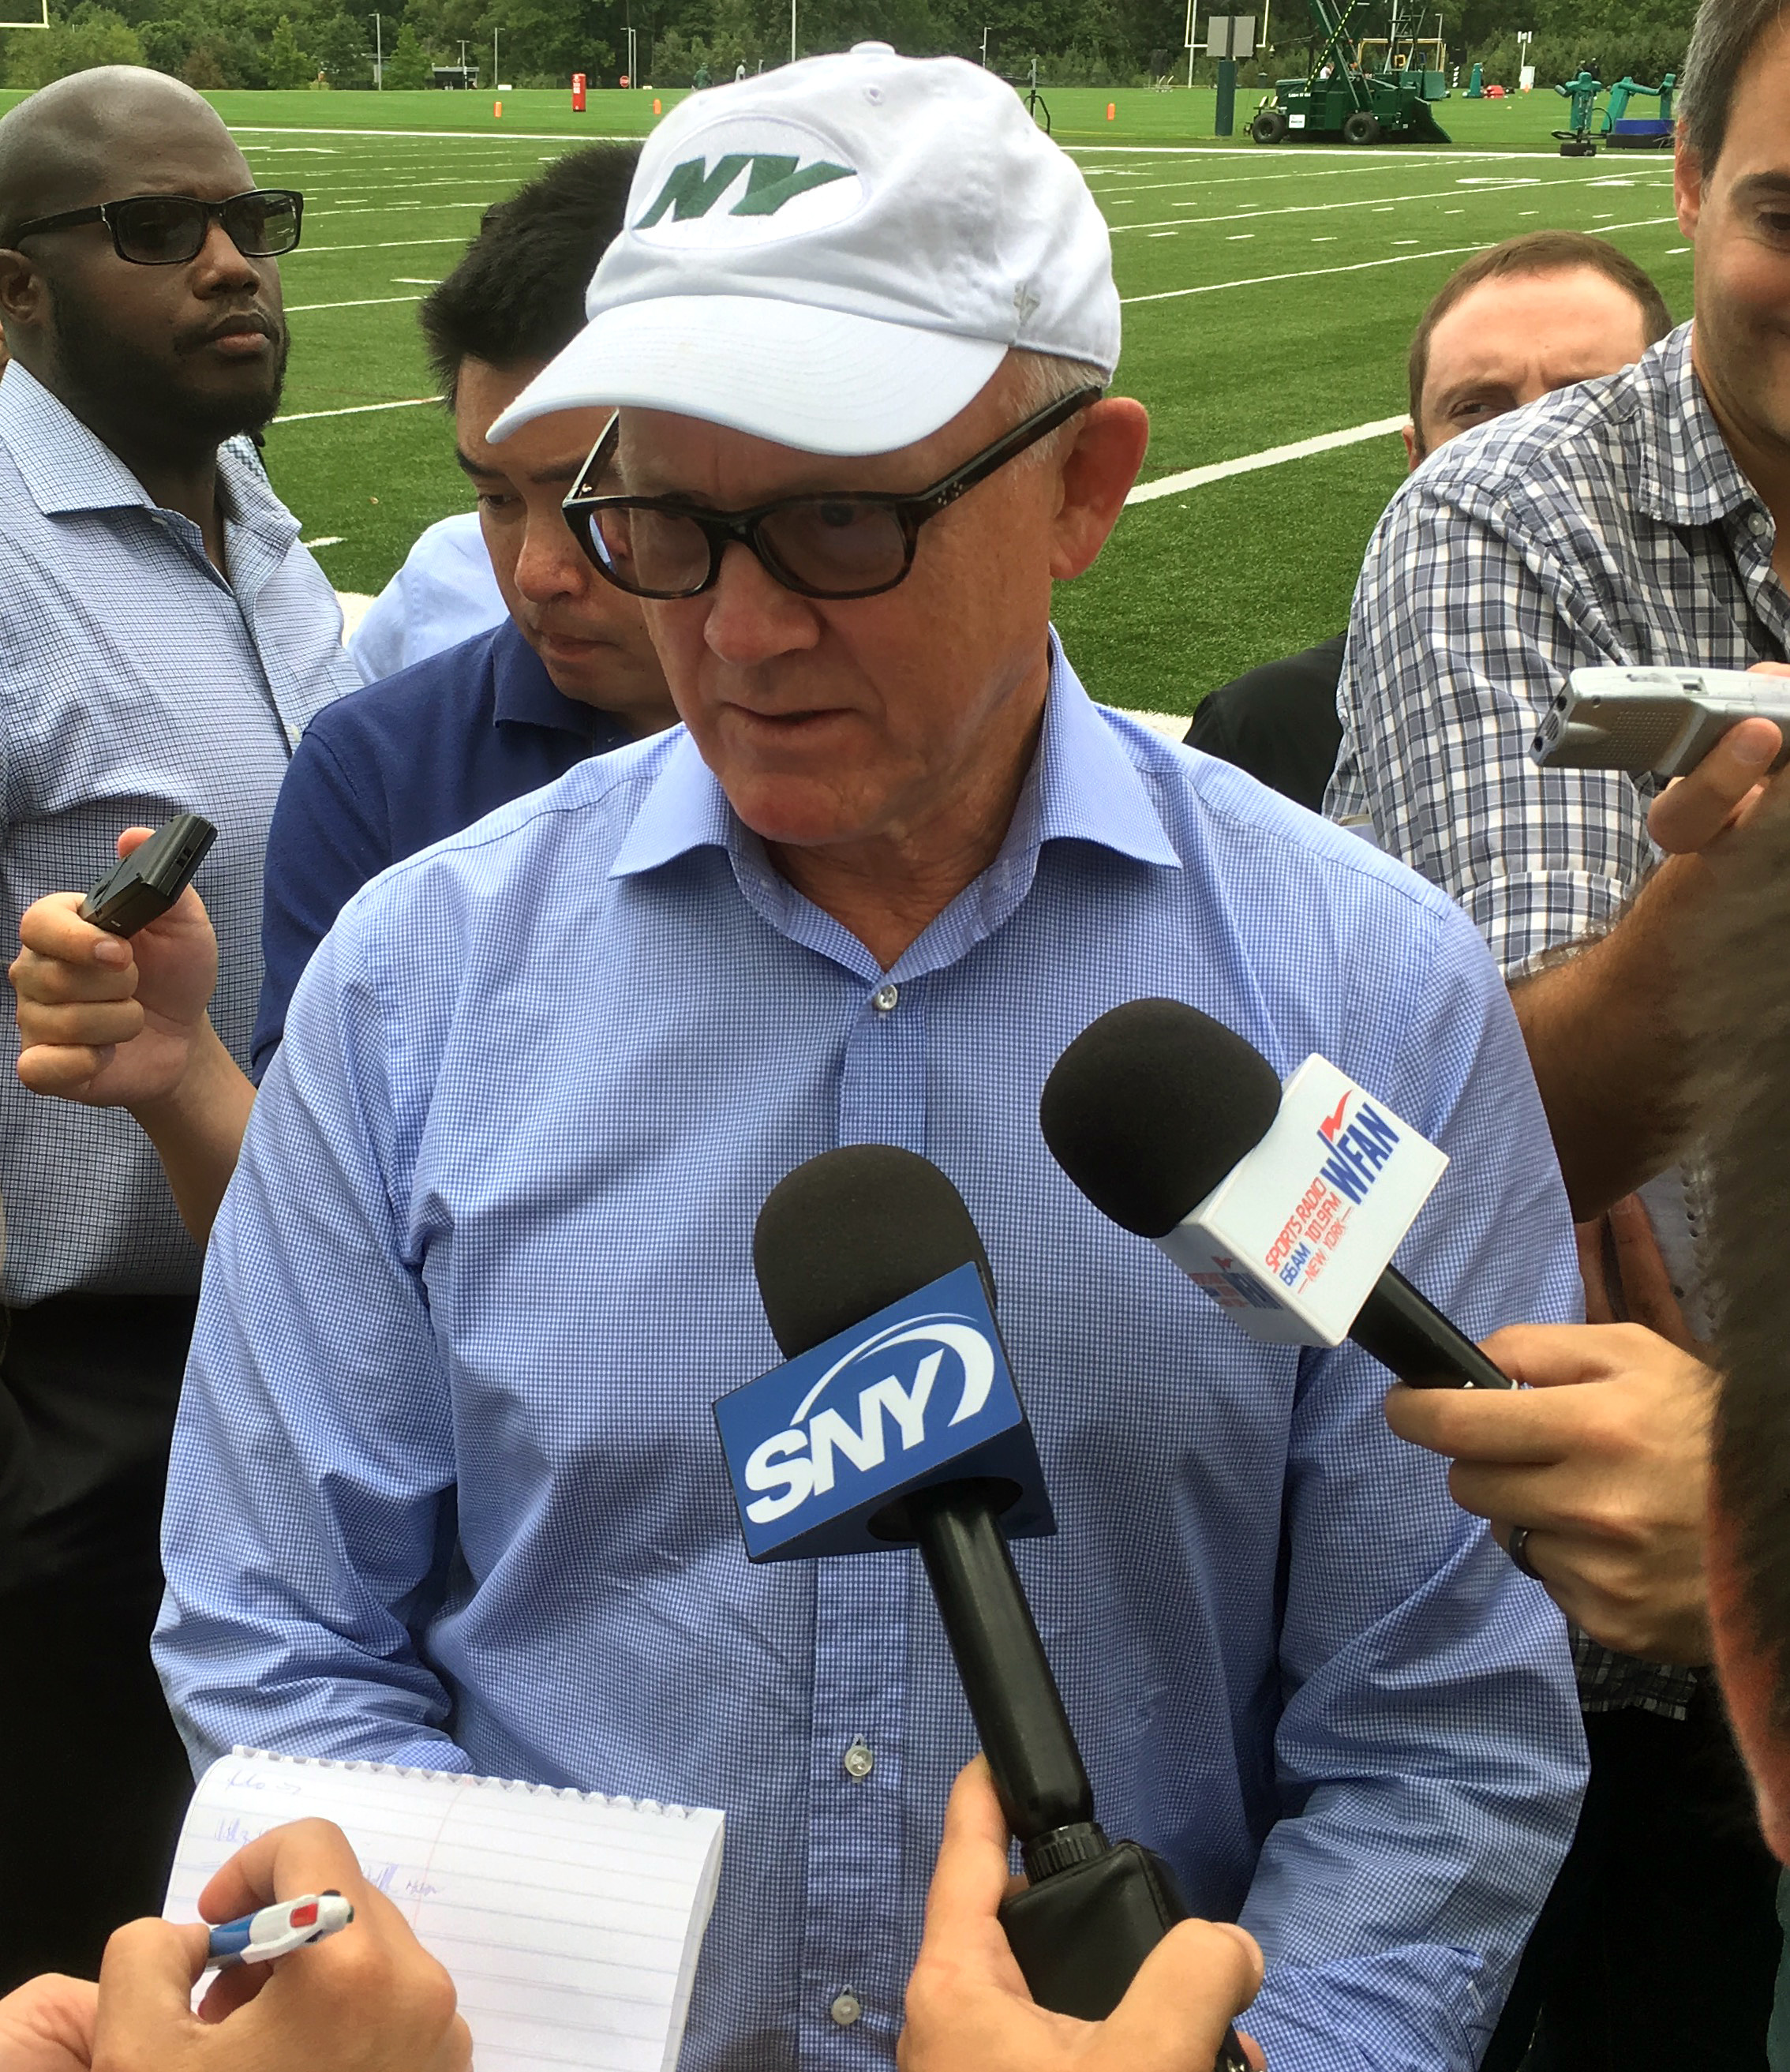 New York Jets NFL football team owner Woody Johnson speaks to reporters before a team practice in Florham Park, N.J., Wednesday, Sept. 7, 2016. Woody Johnson says the team's goal is to reach the playoffs every year, but declined to say that this season wo